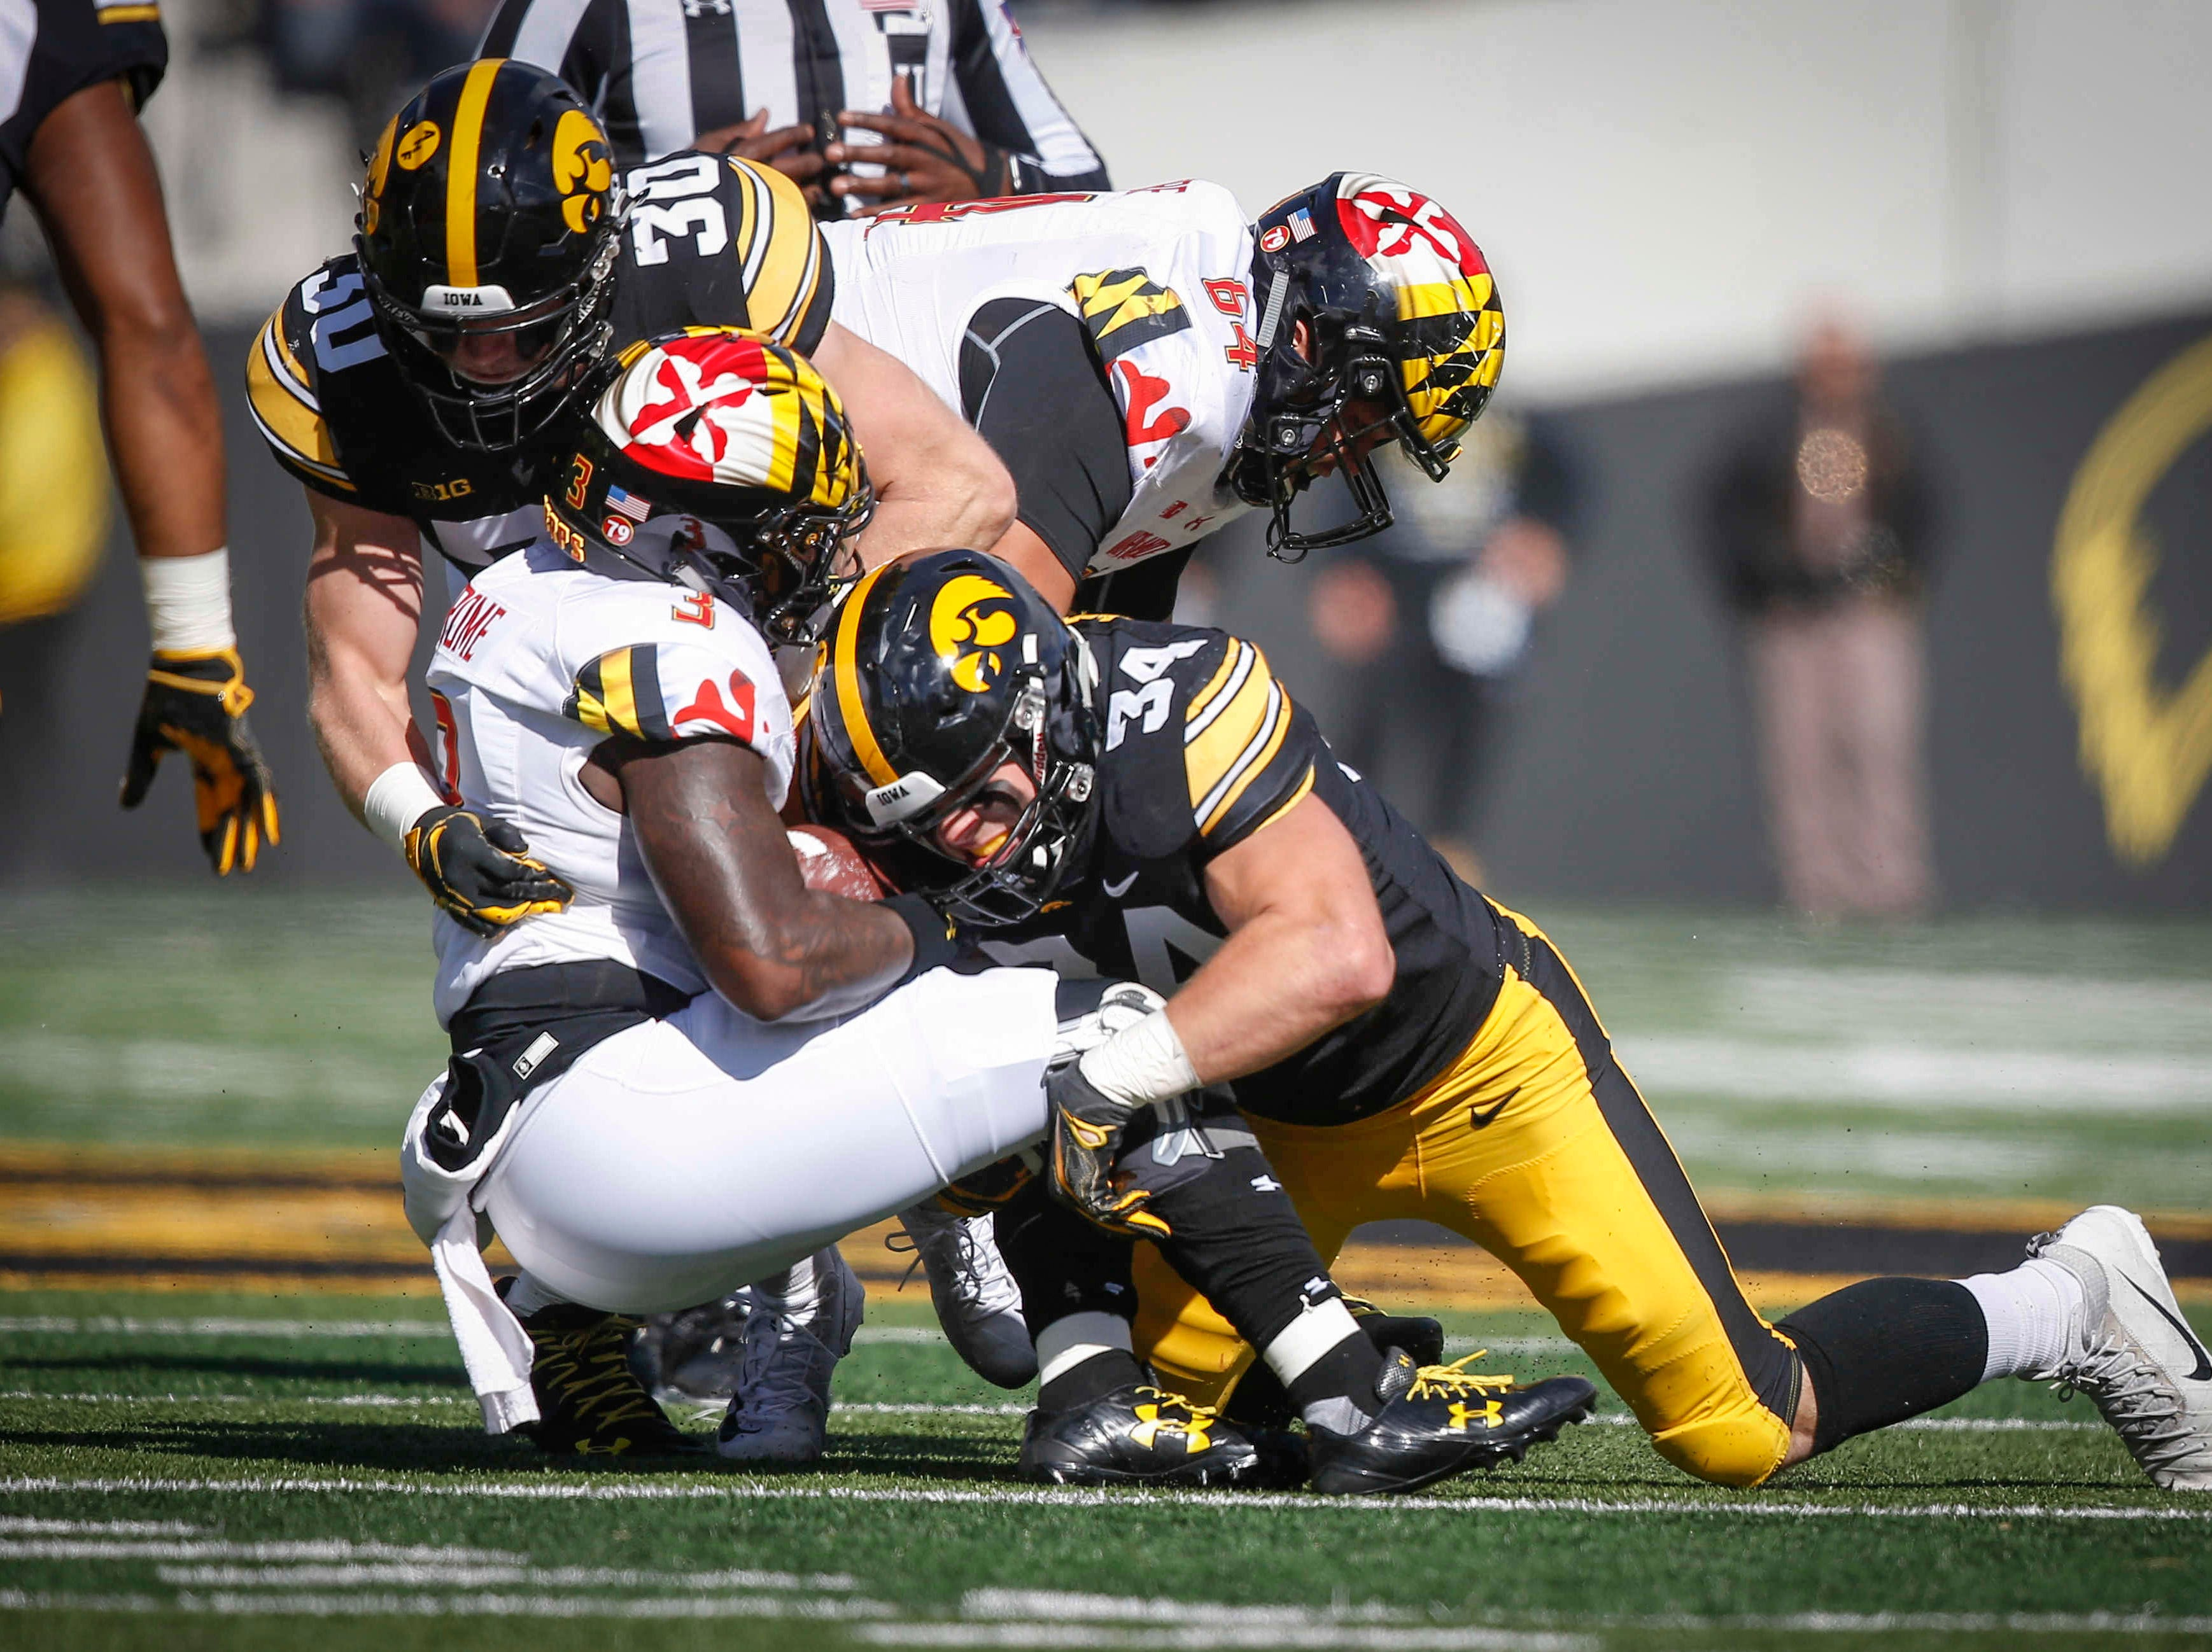 Iowa safety Jake Gervase (No. 30) and linebacker Kristian Welch team up to tackle Maryland quarterback Tyrrell Pigrome on Saturday, Oct. 20, 2018, at Kinnick Stadium in Iowa City.